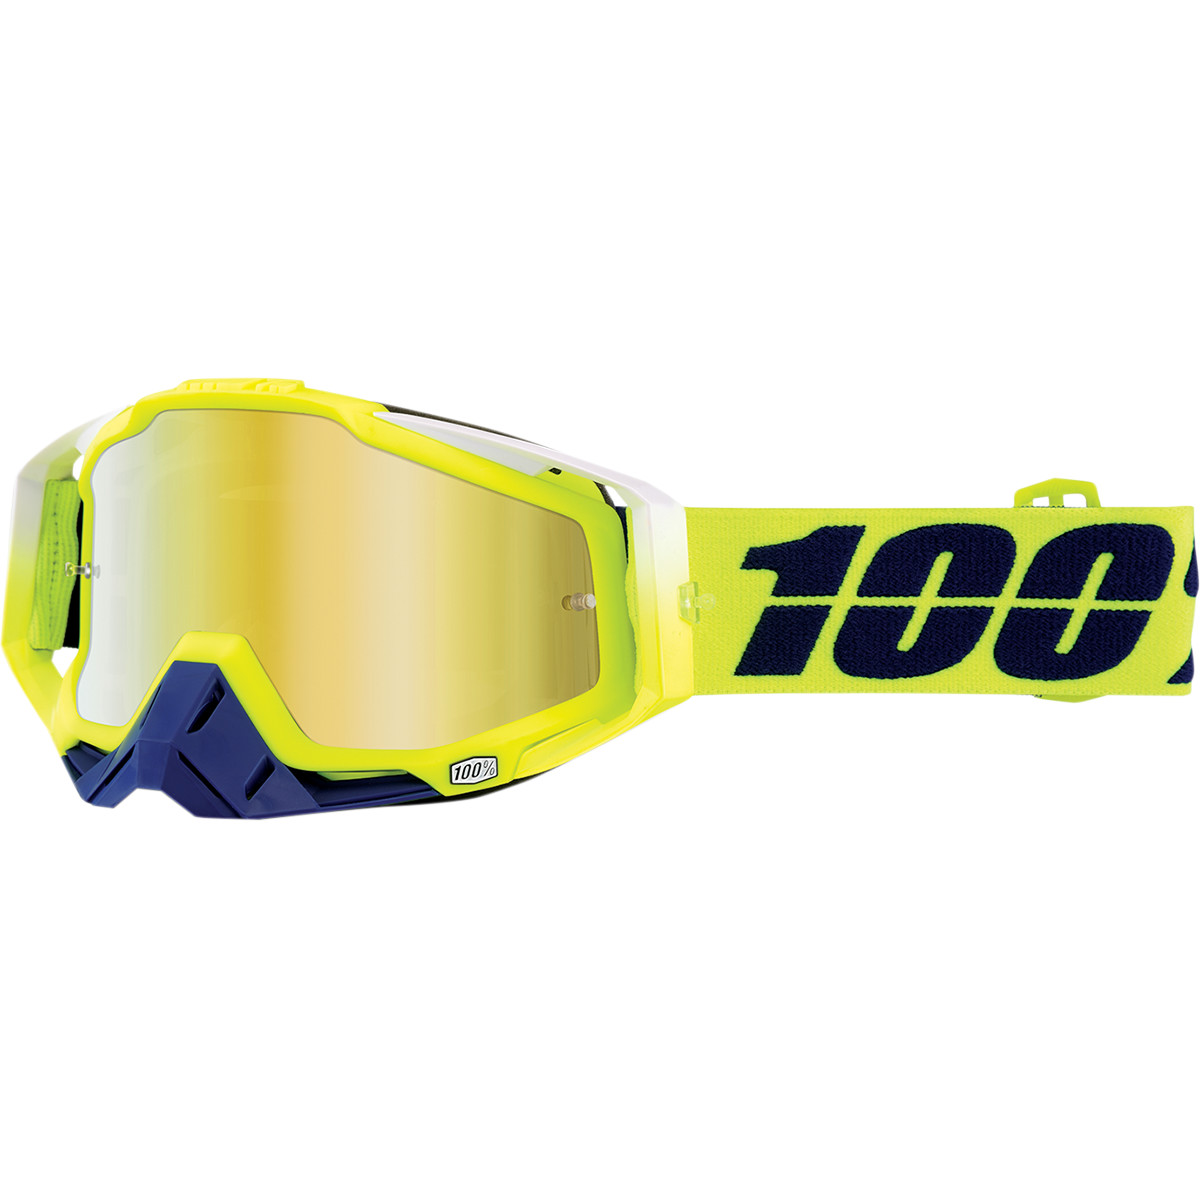 racecraft goggles [2601-2138]